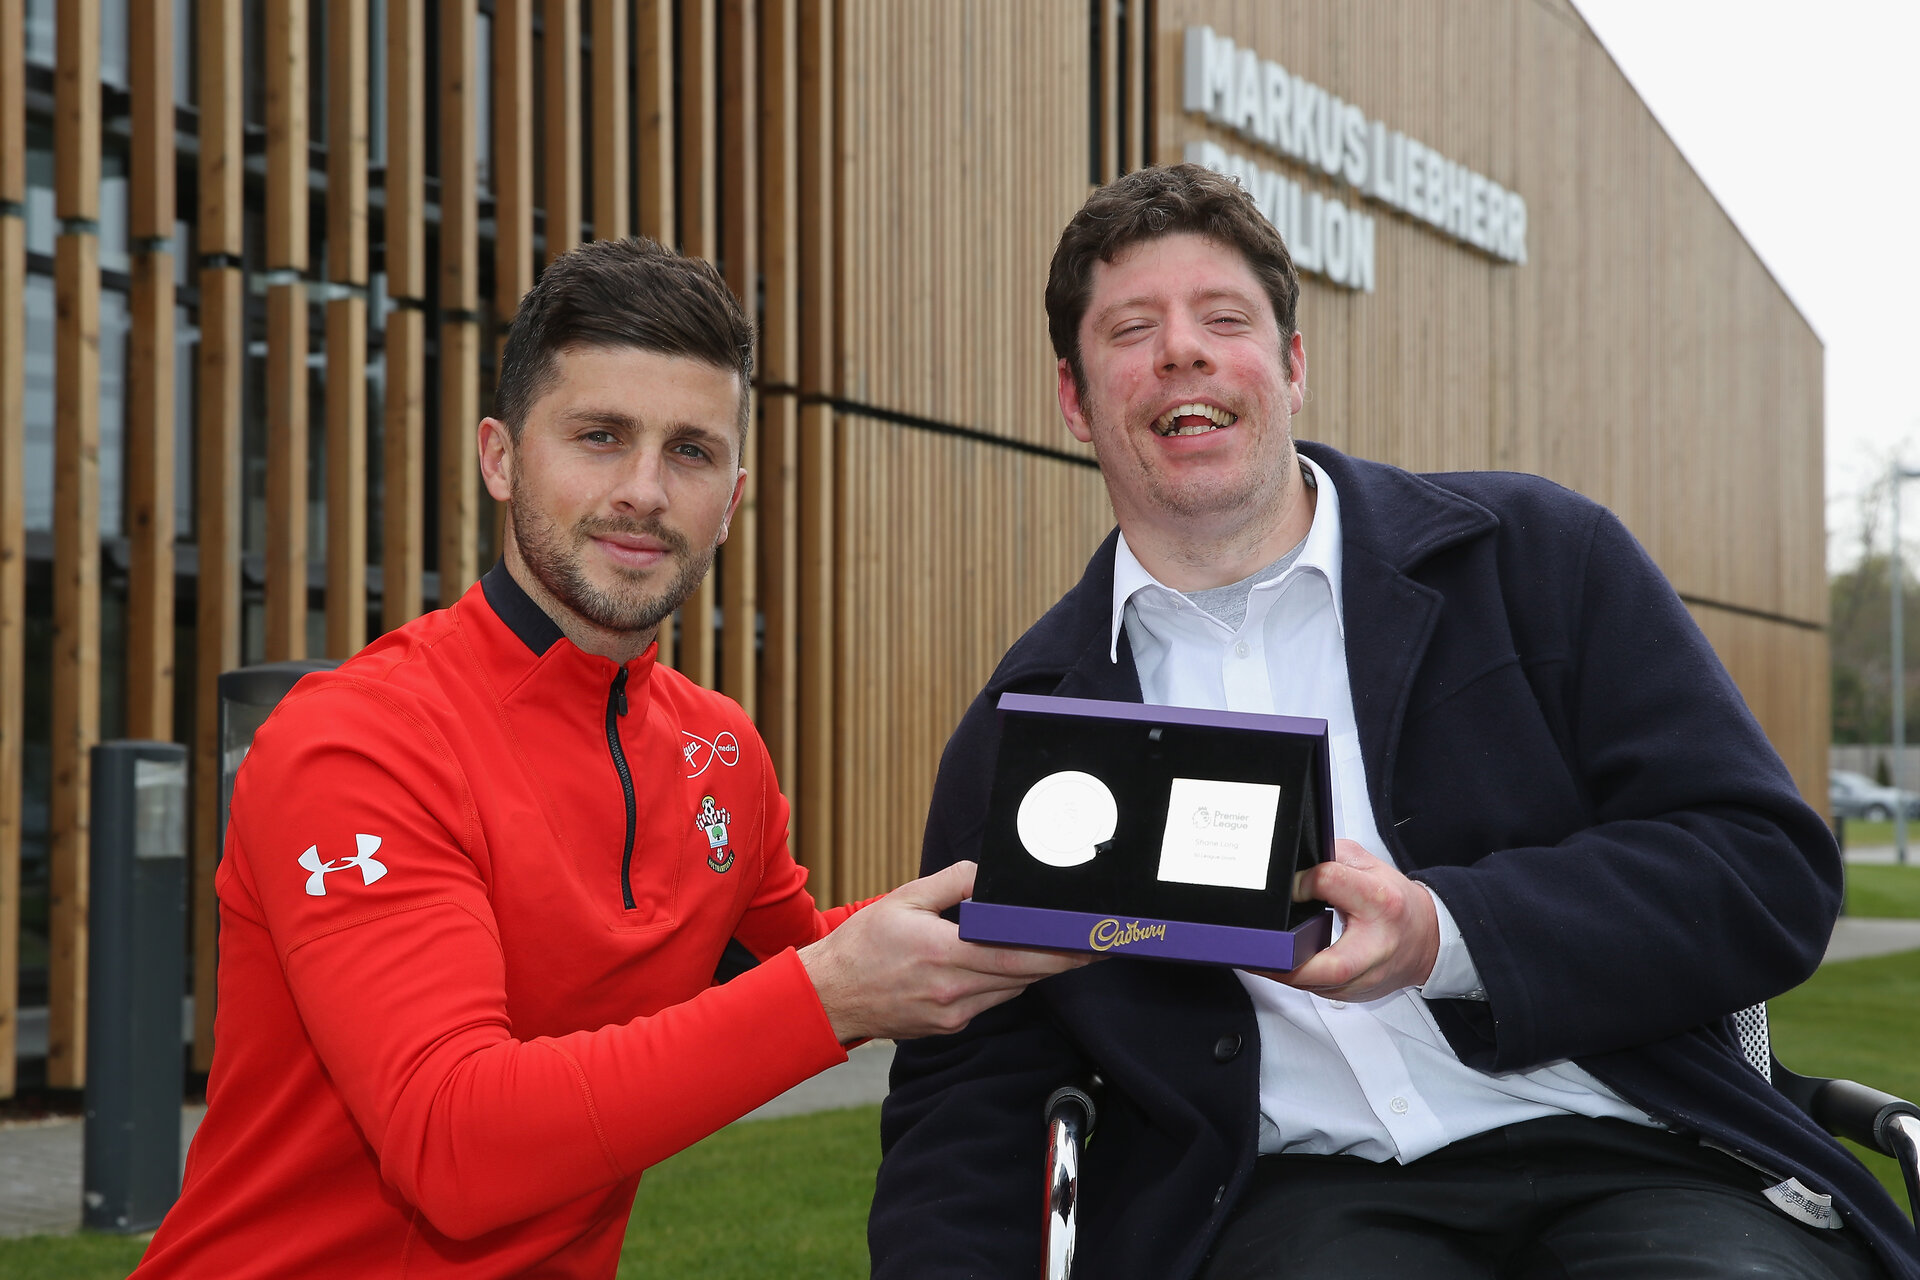 SOUTHAMPTON, ENGLAND - APRIL 16: Guest presenter Chris presents Shane Long of Southampton with his 50th Premier League Goal Milestone Award on April 16, 2019 at Staplewood Complex on April 16, 2019 in Southampton, England. (Photo by Steve Bardens/Getty Images) *** Local Caption *** Shane Long